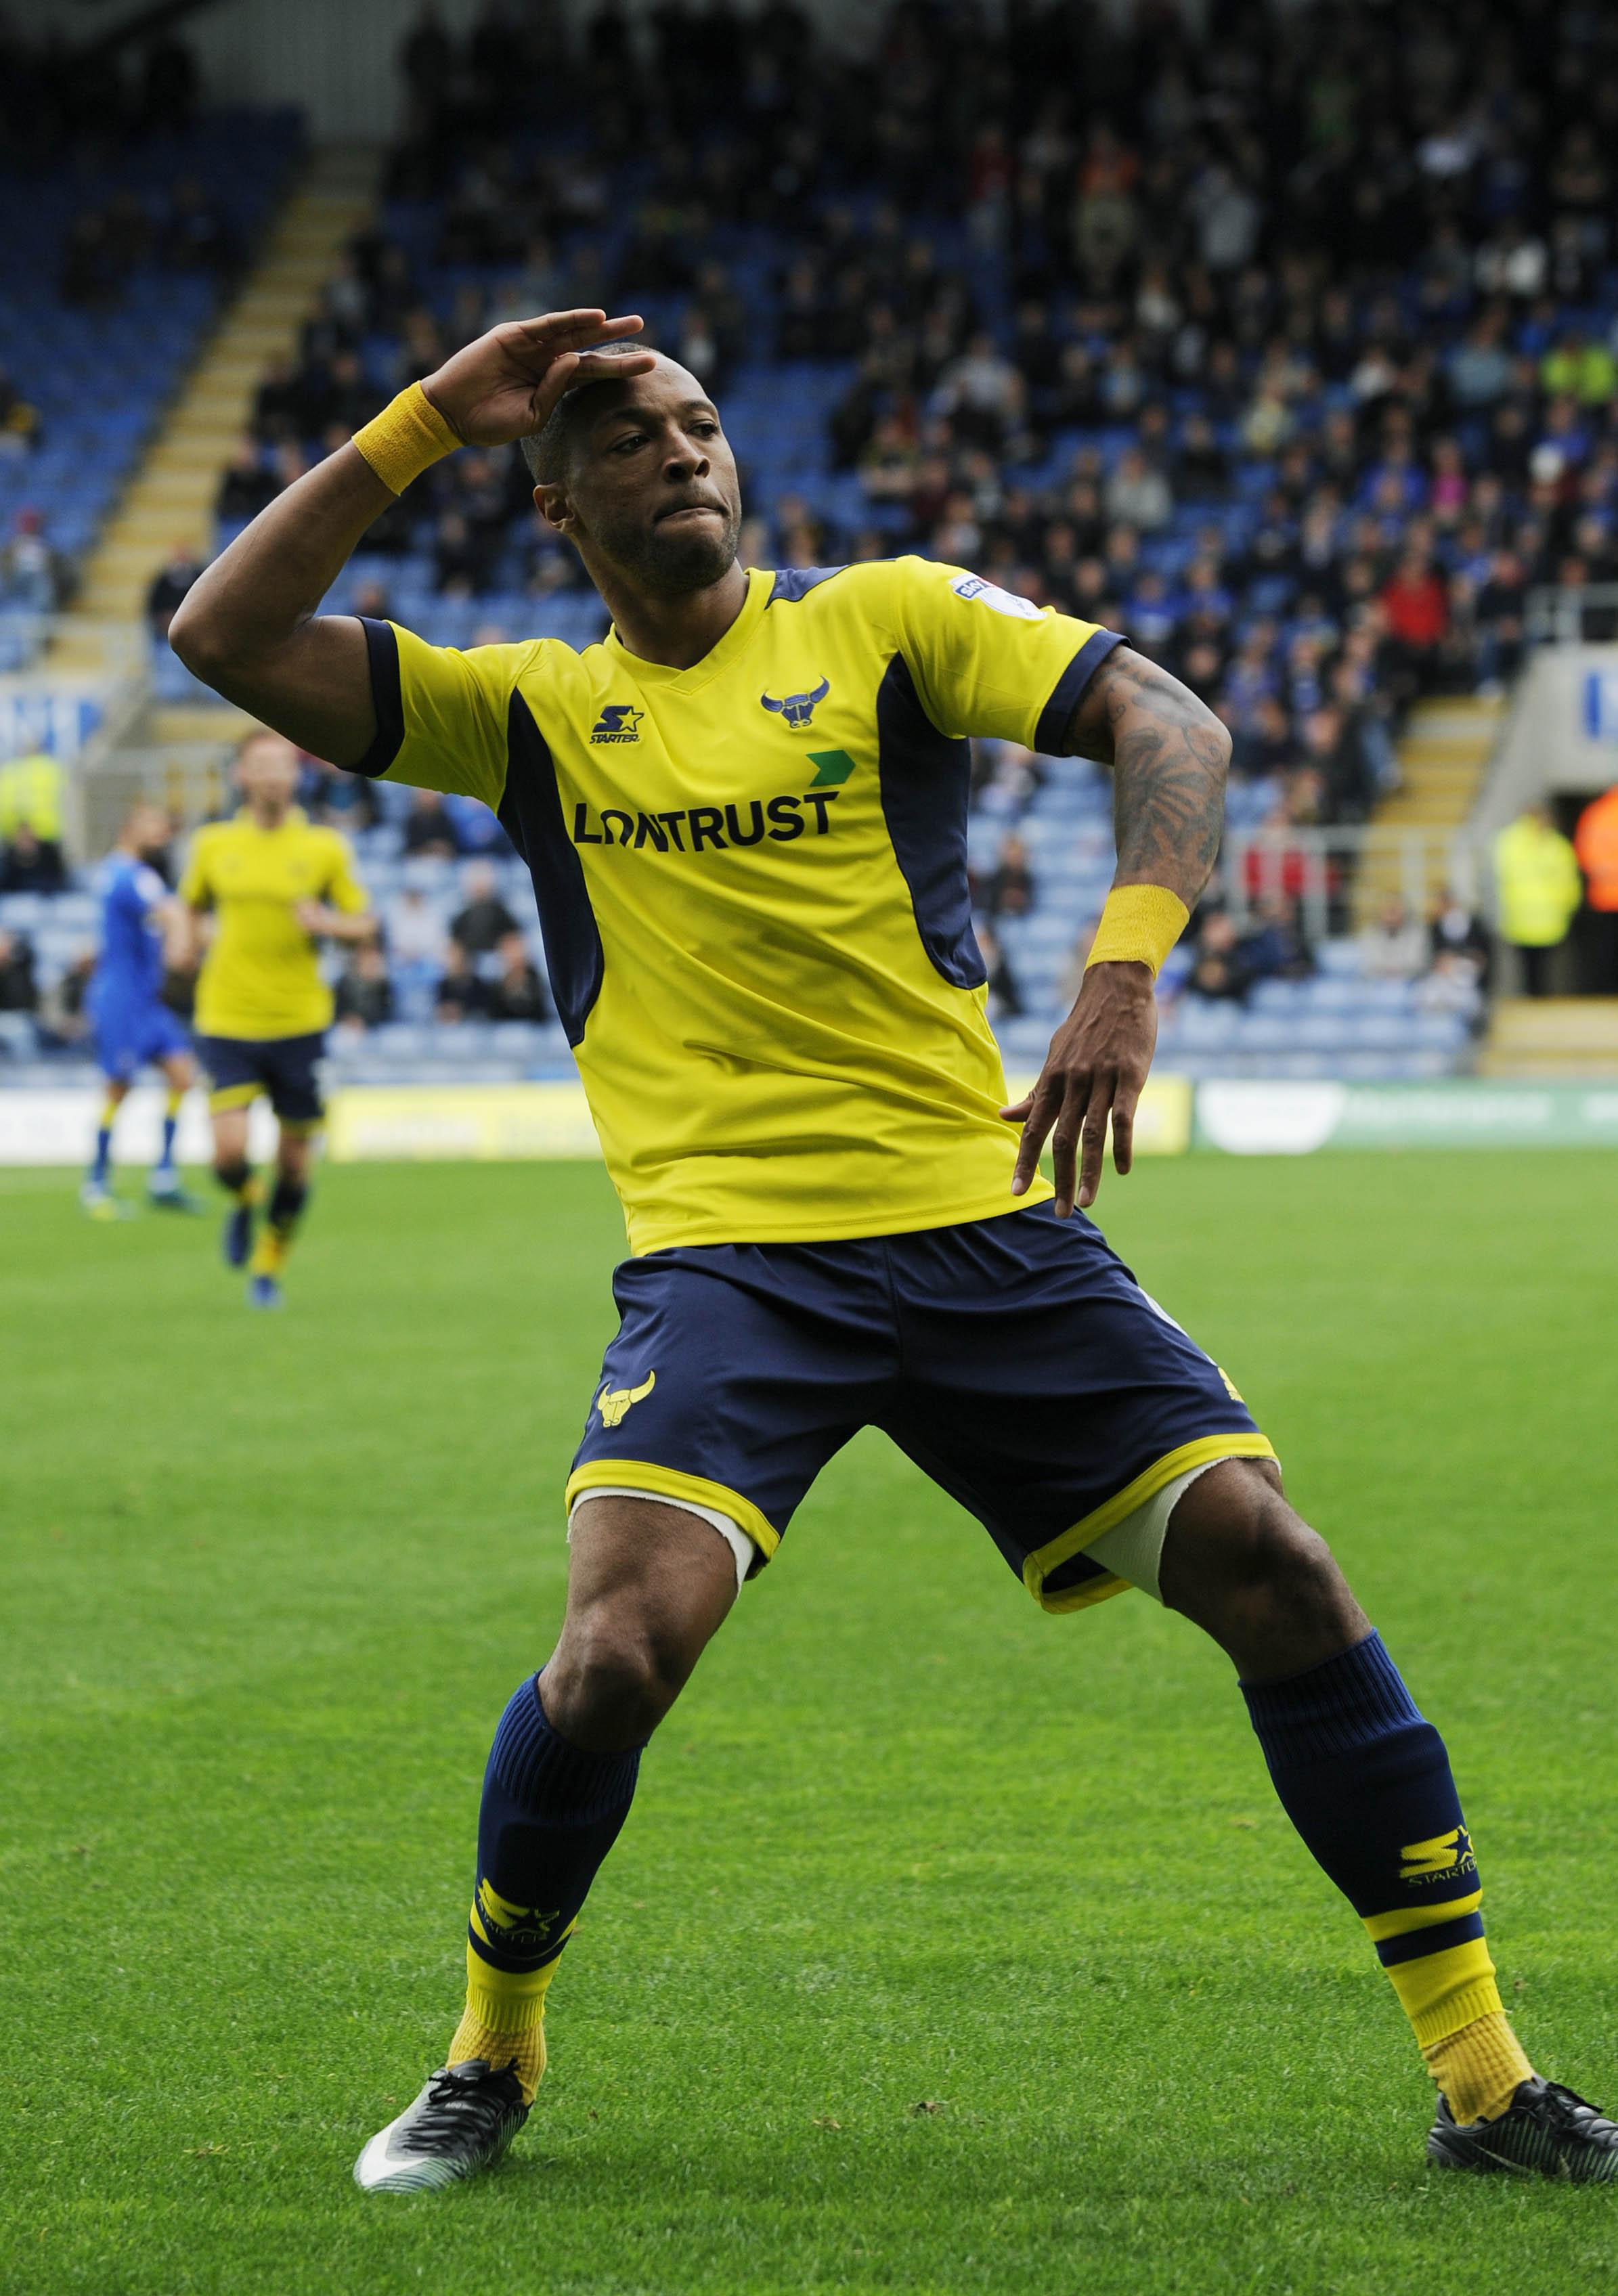 IN FORM: Wes Thomas celebrates his goal against Wimbledon